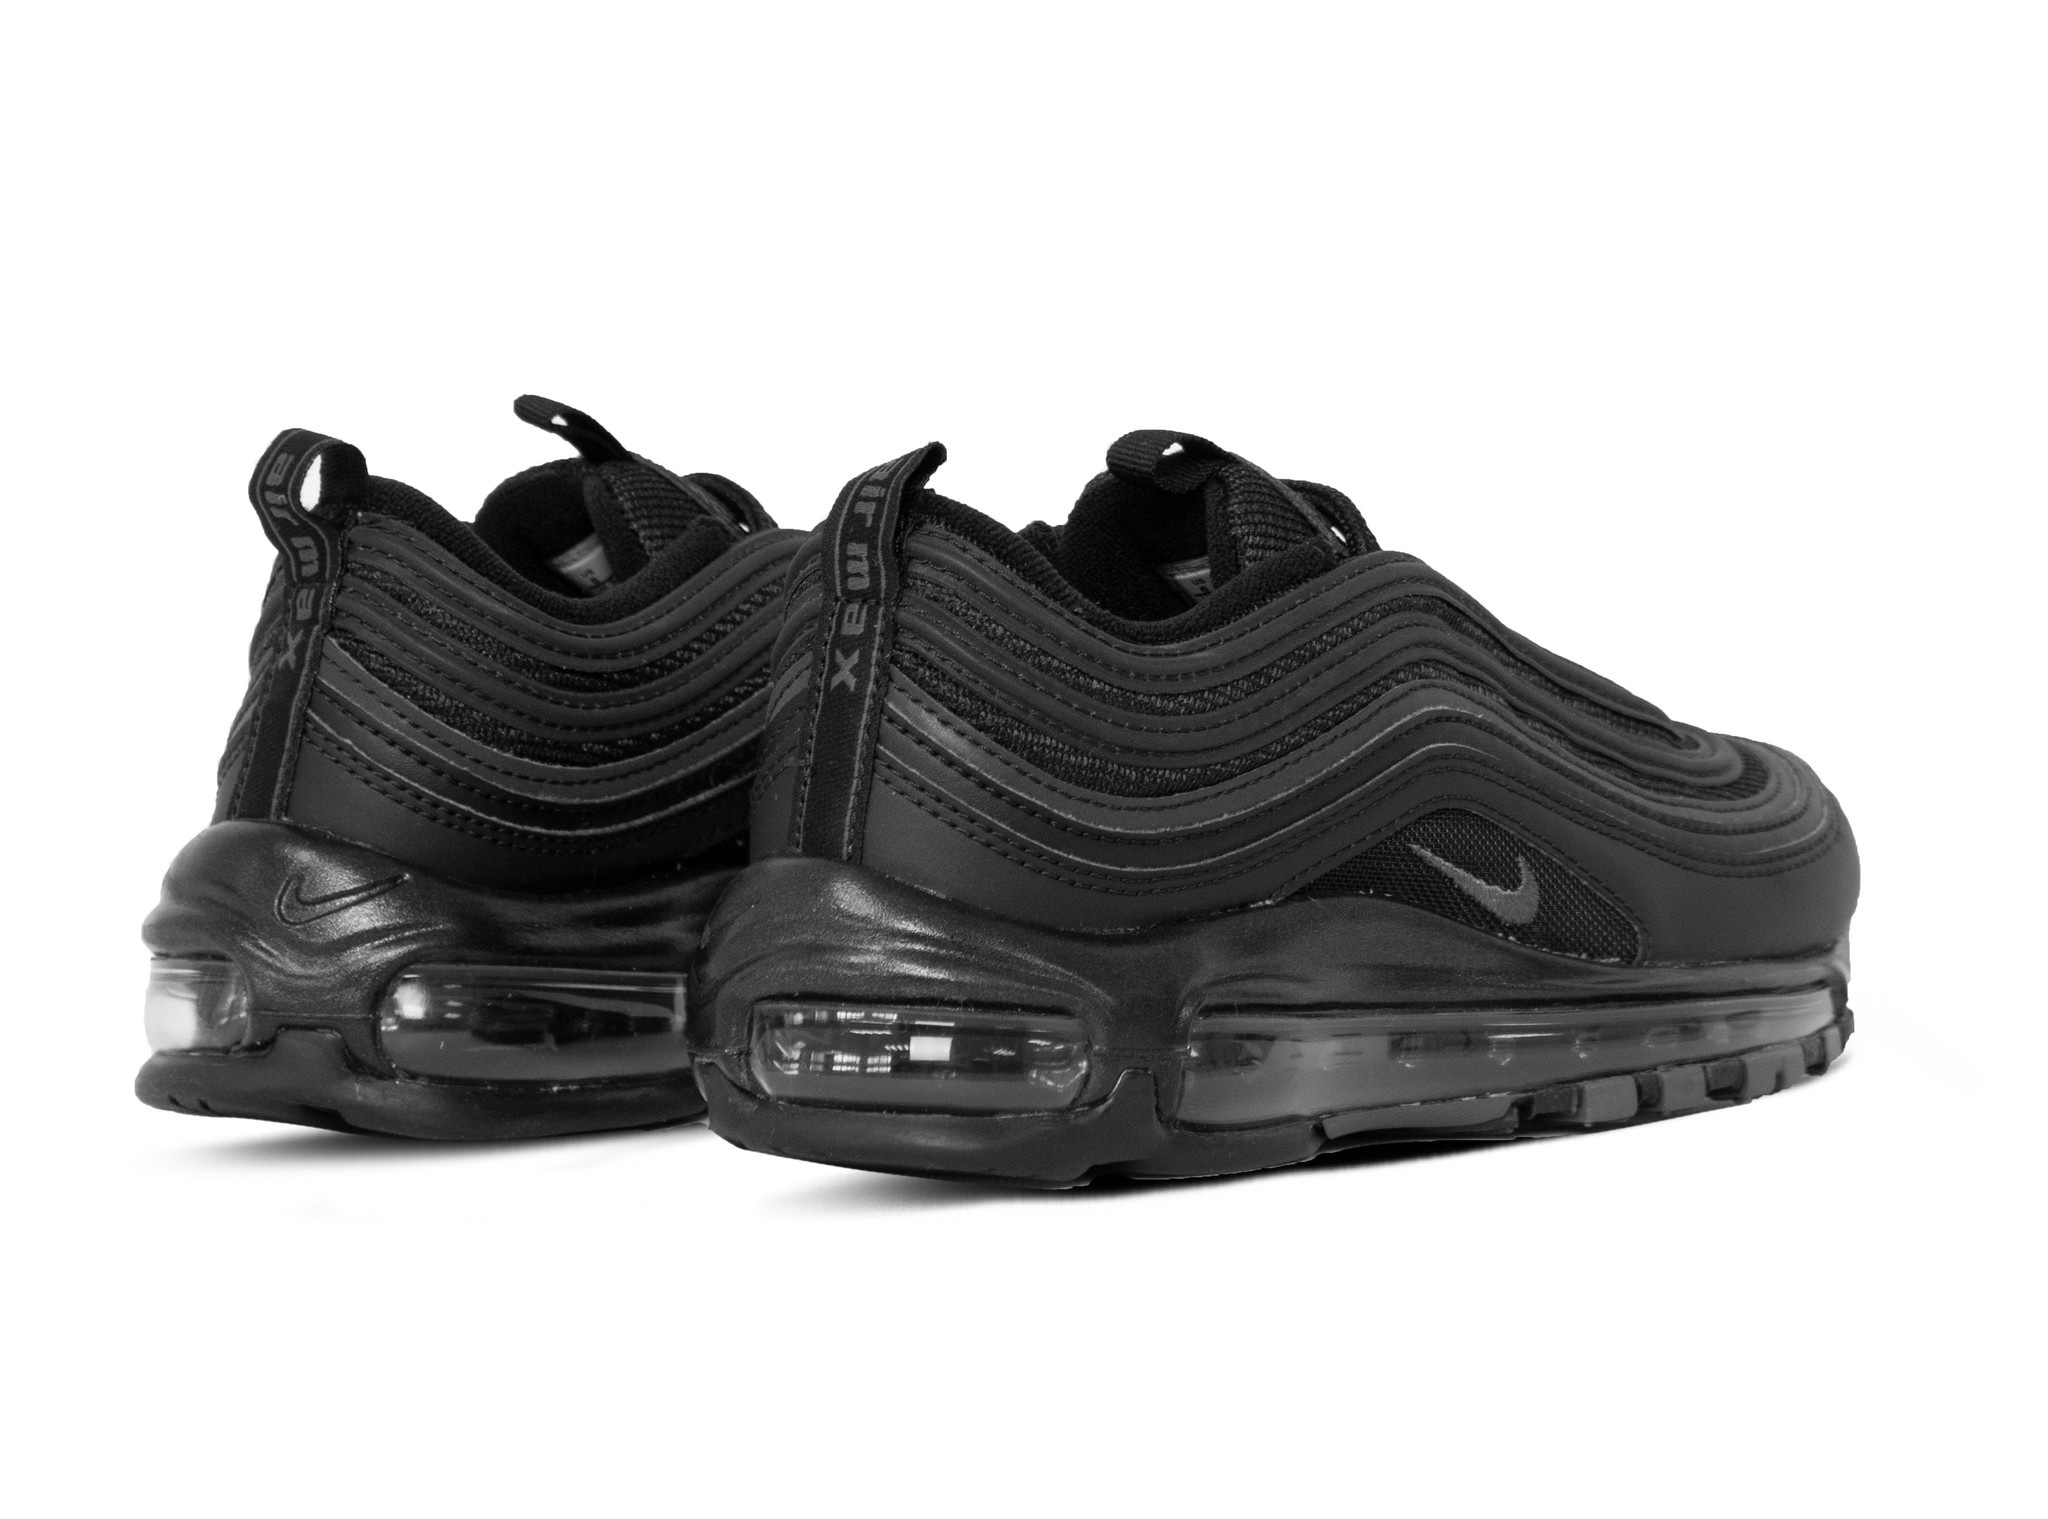 WMNS Air Max 97 Black / Dark Grey